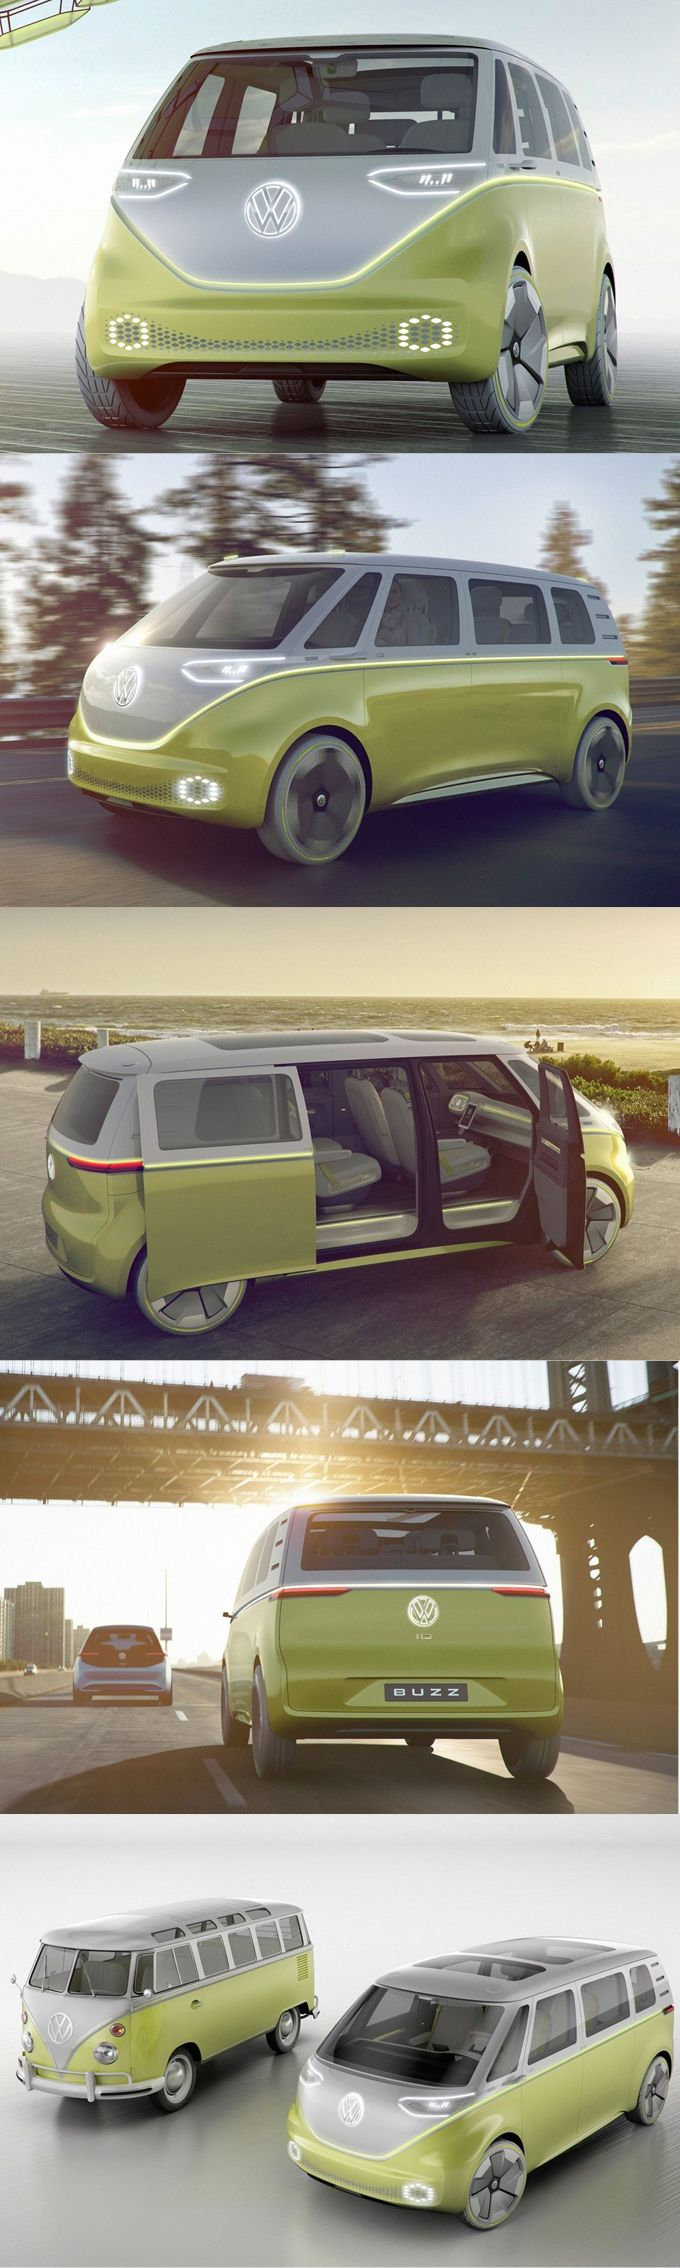 2017 VW I.D. Buzz / concept / autonomous / electric / MPV / Germany / yellow white / 17-191